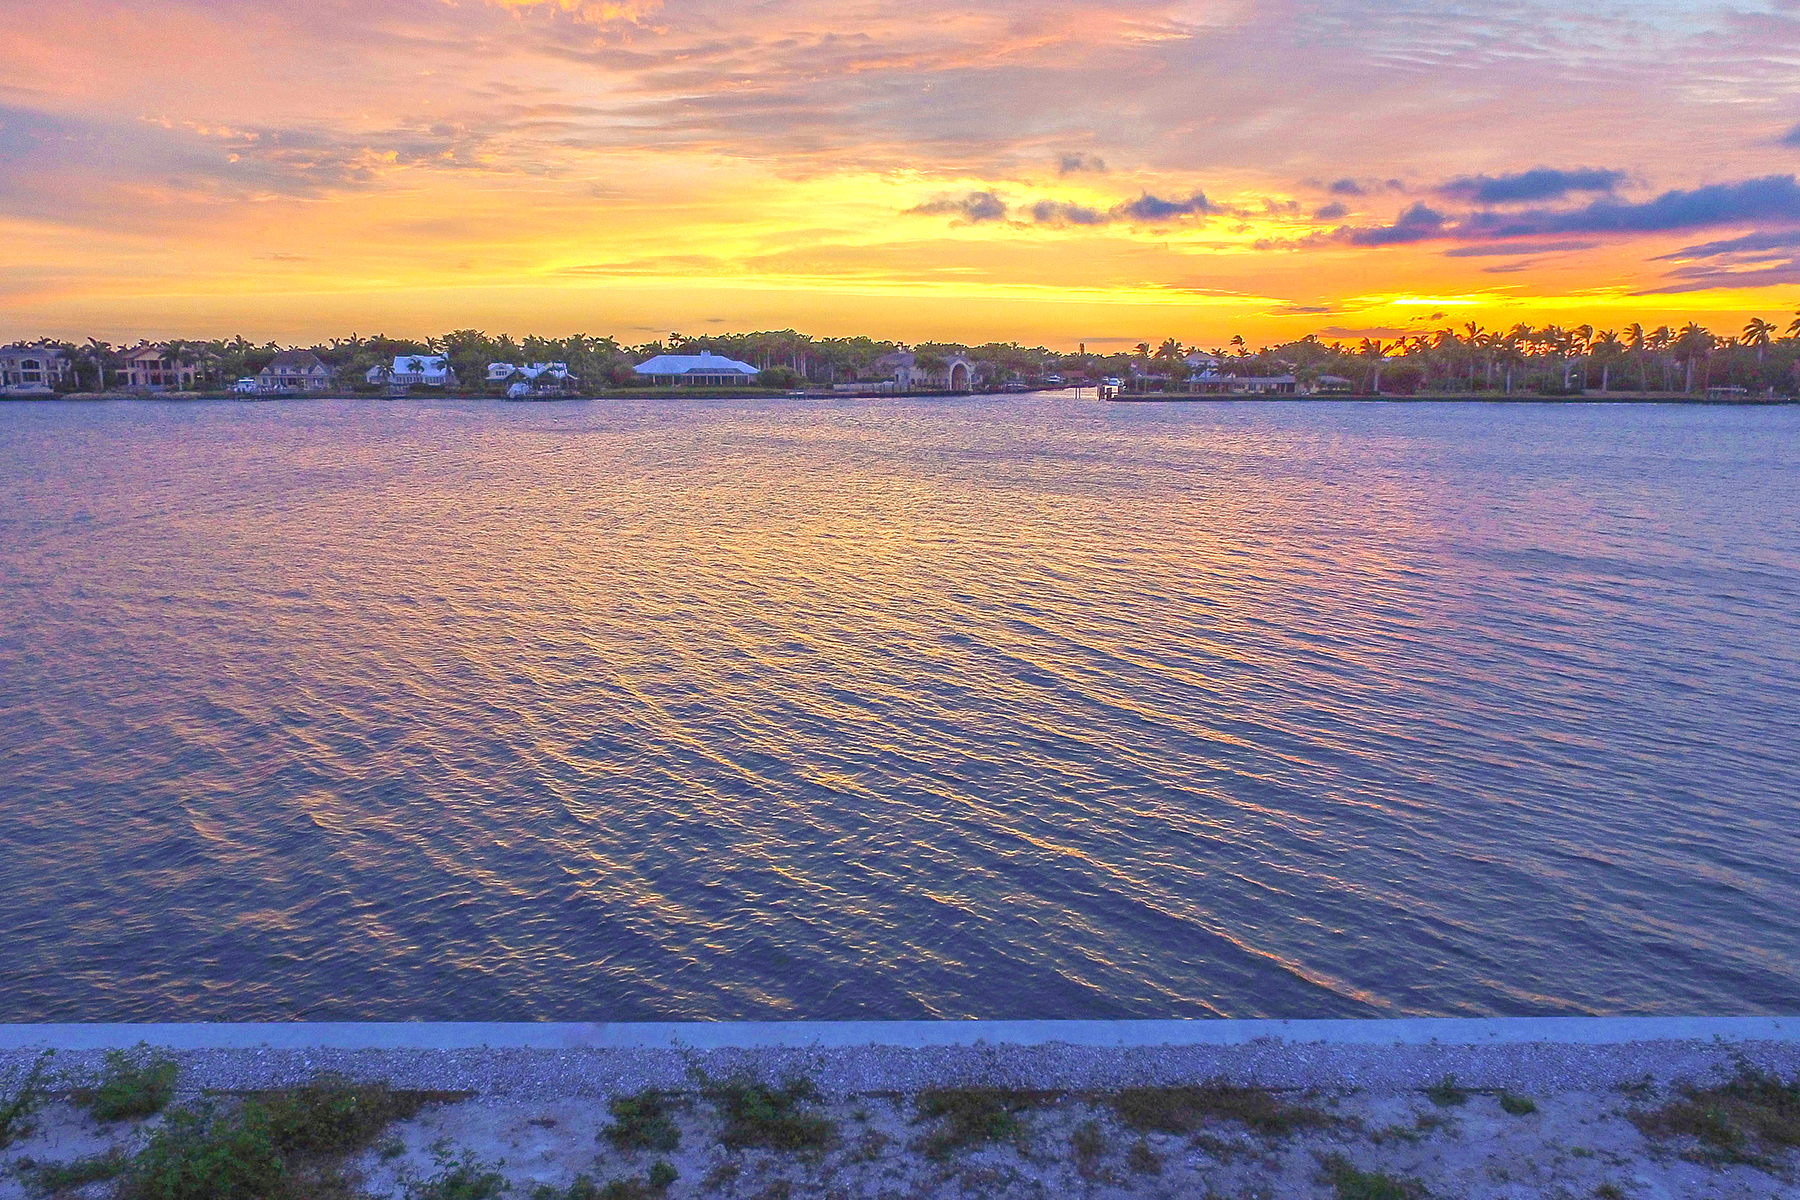 Land for Sale at ROYAL HARBOR 2280 Kingfish Rd Naples, Florida, 34102 United States